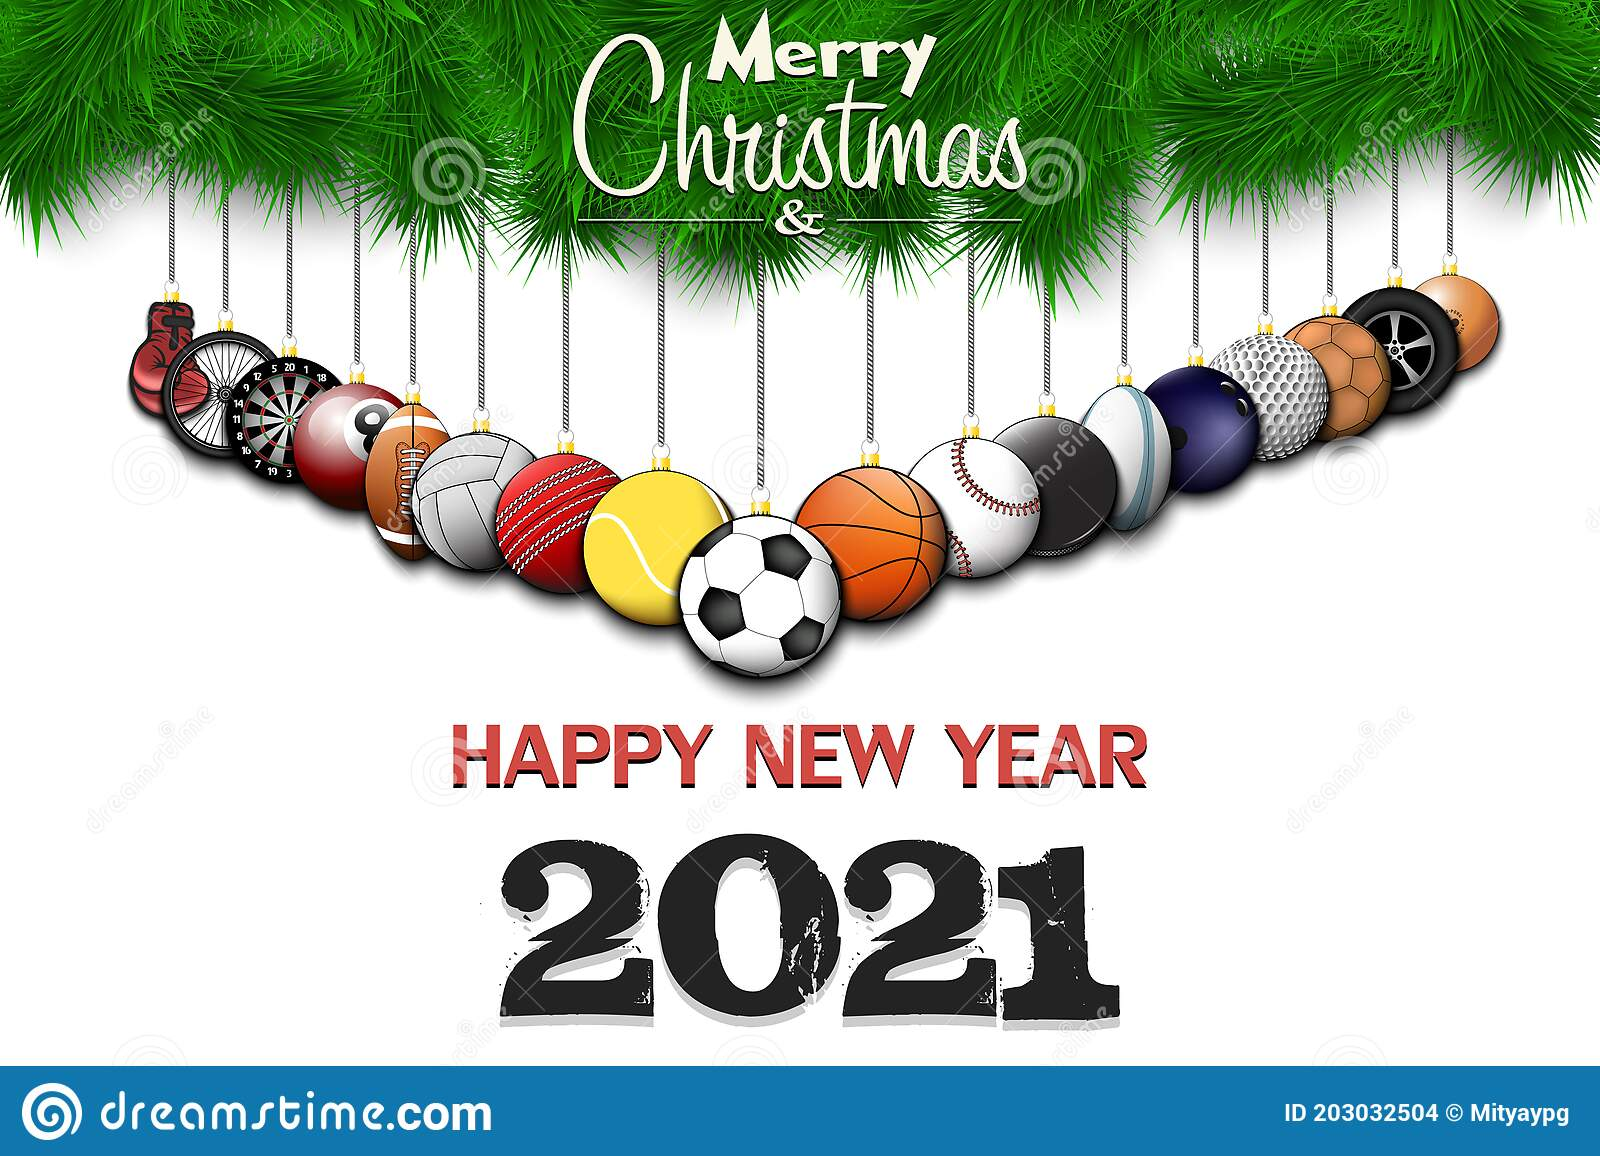 Hanging Banner Images Merry Christmas & Happy New Year 2021 Merry Christmas And Happy New Year Sport Decor Stock Vector Illustration Of Hockey Branch 203032504